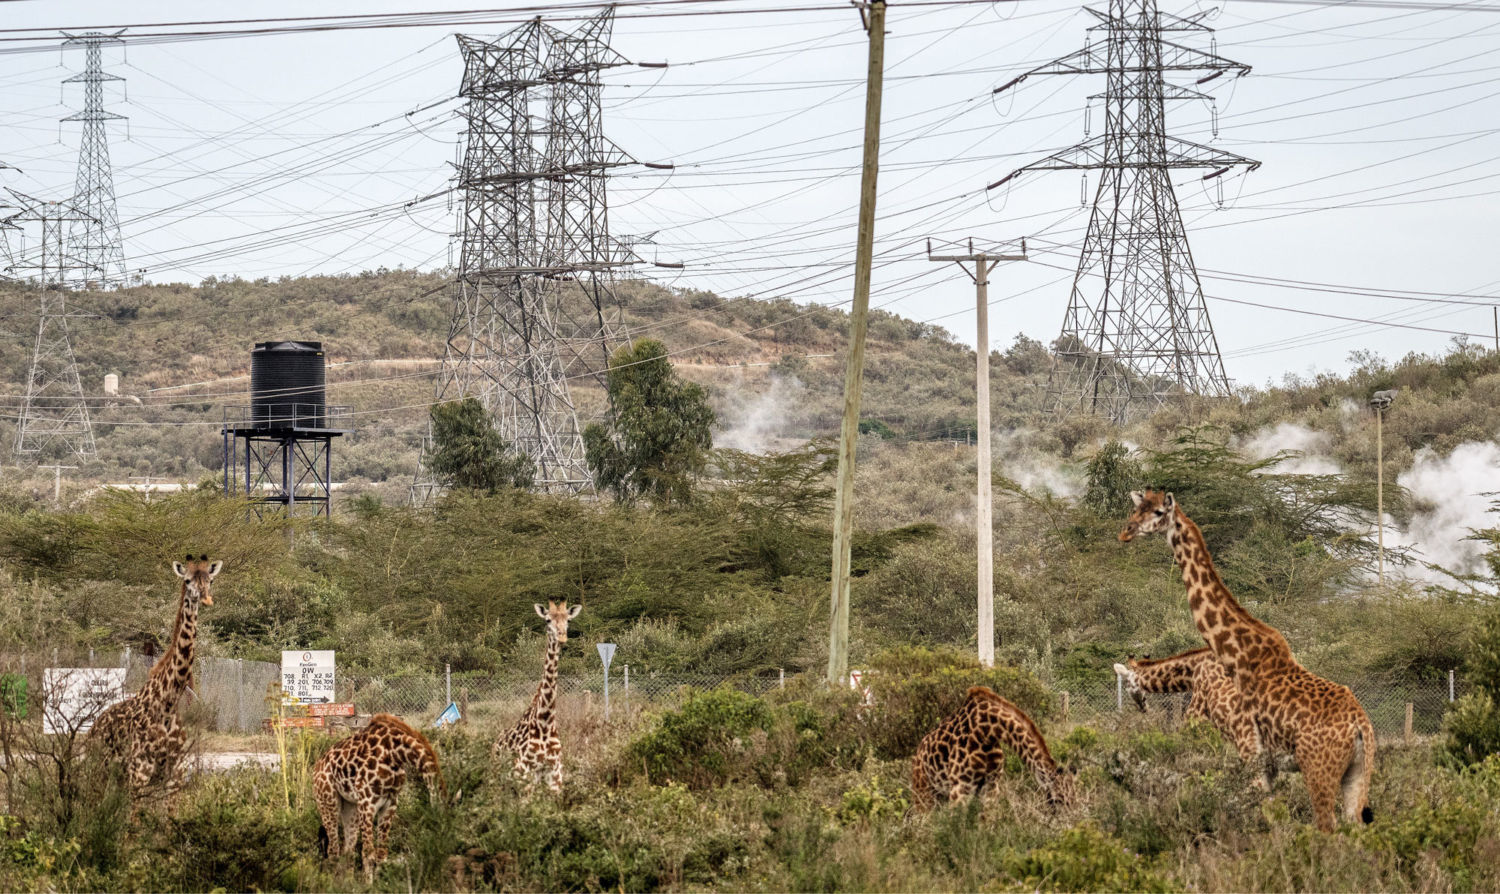 How Kenya's Push for Development Is Threatening Its Prized Wild Lands